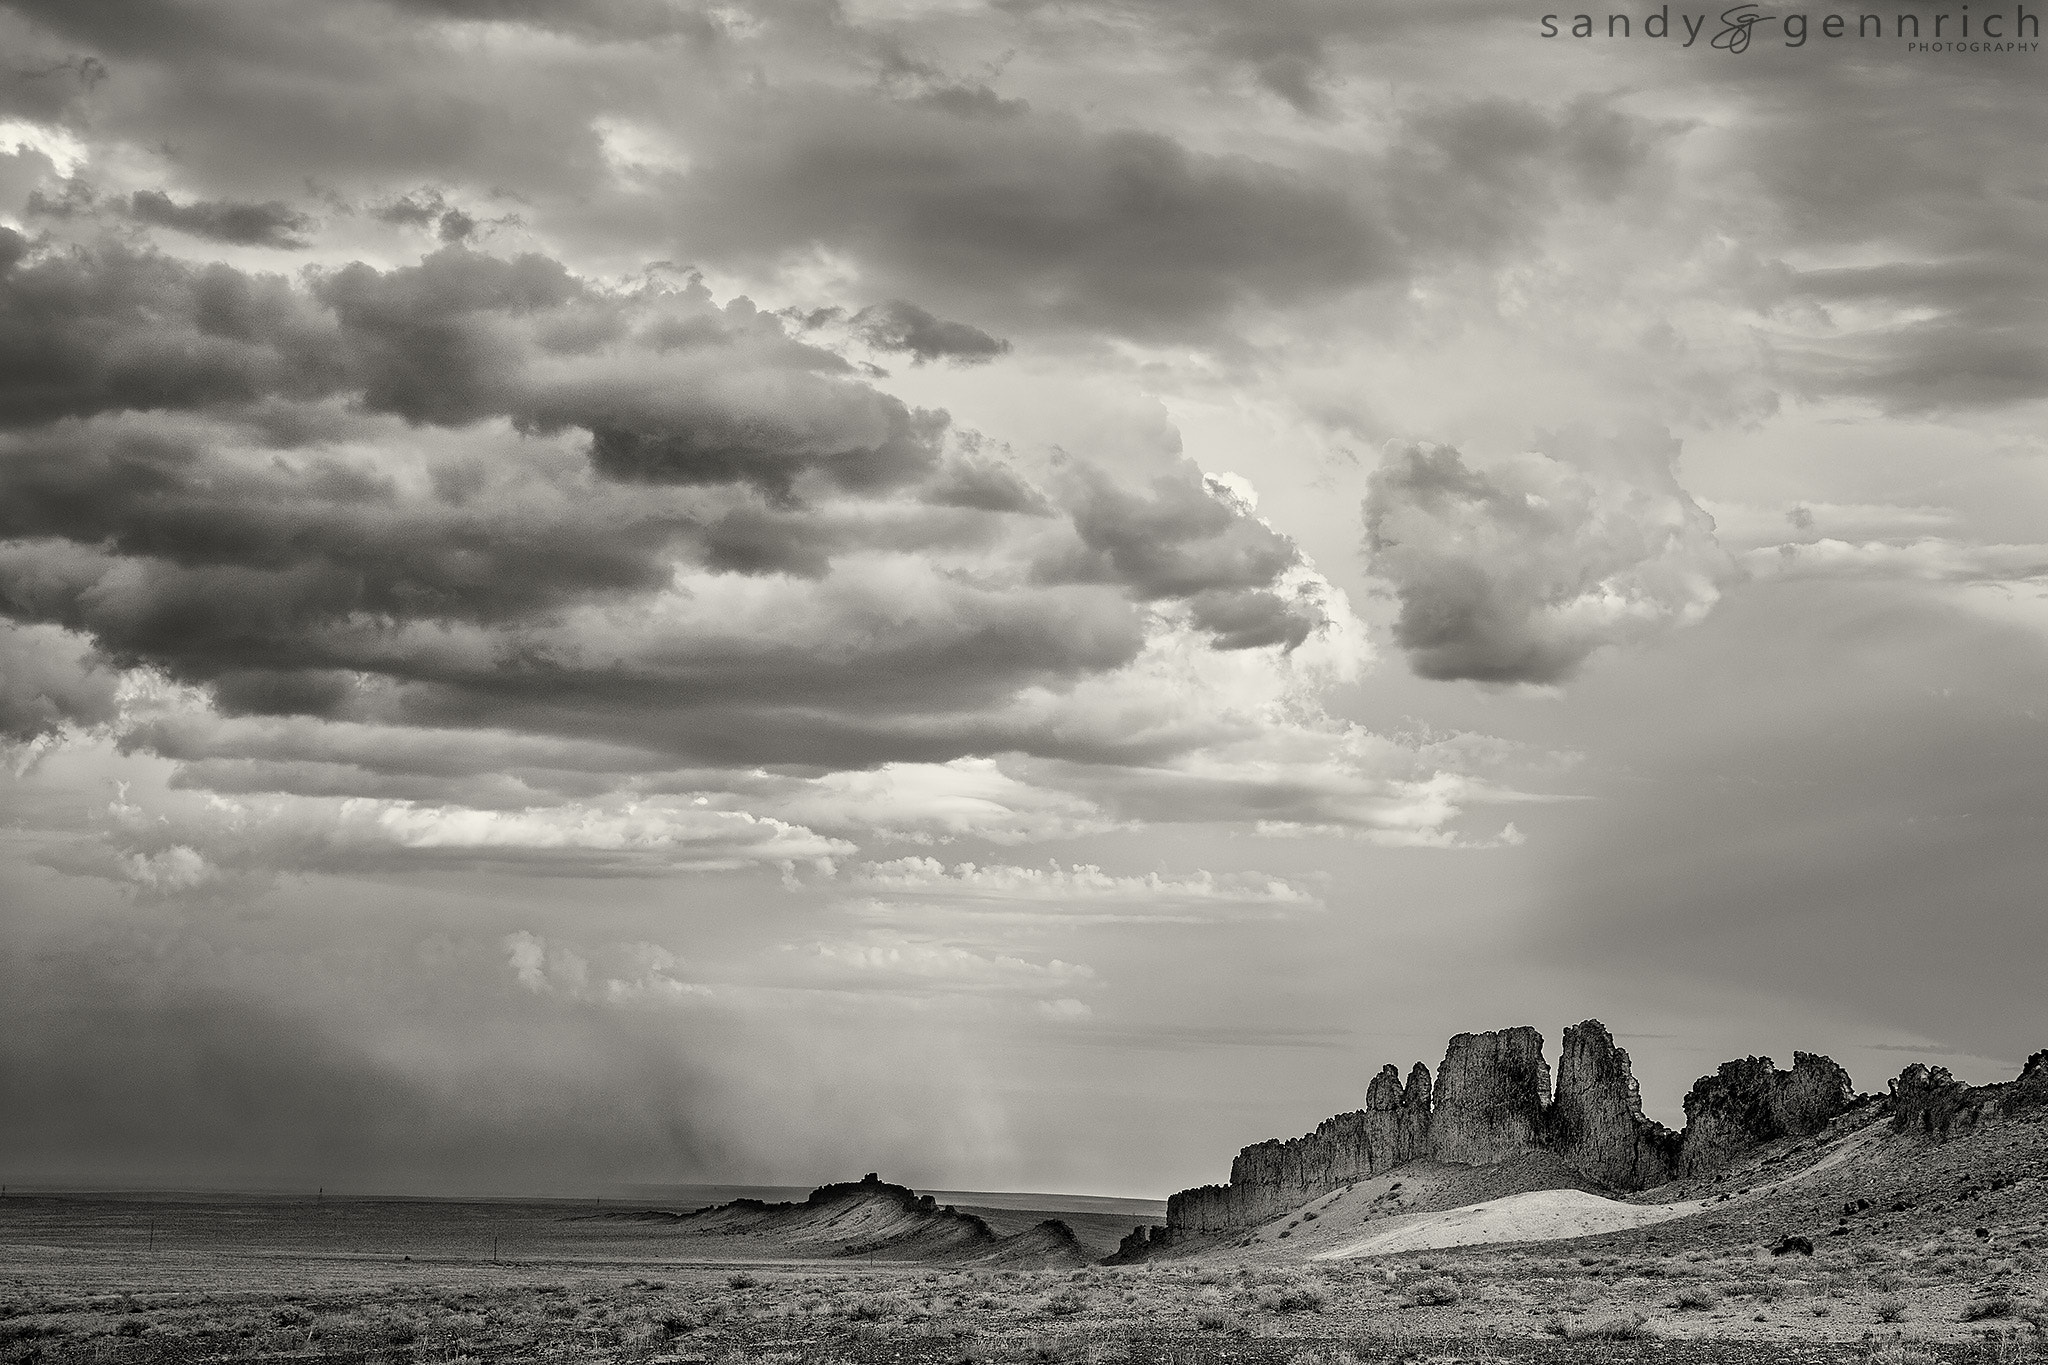 Photograph Shiprock's Spine - Farmington NM by Sandy Gennrich on 500px